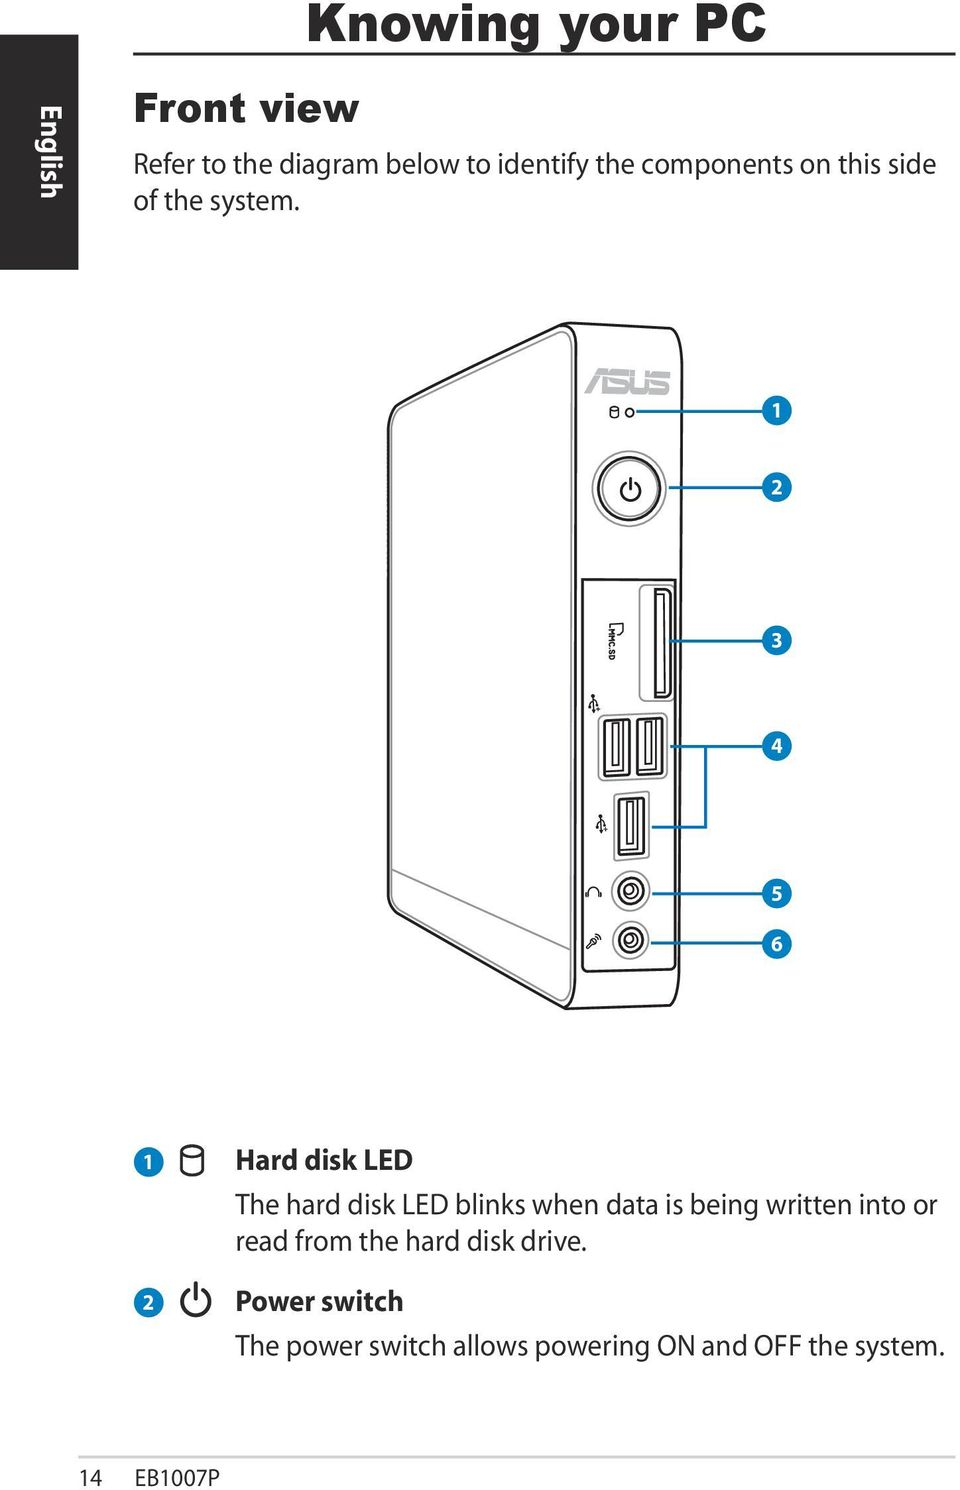 1 2 3 4 5 6 1 2 Hard disk LED The hard disk LED blinks when data is being